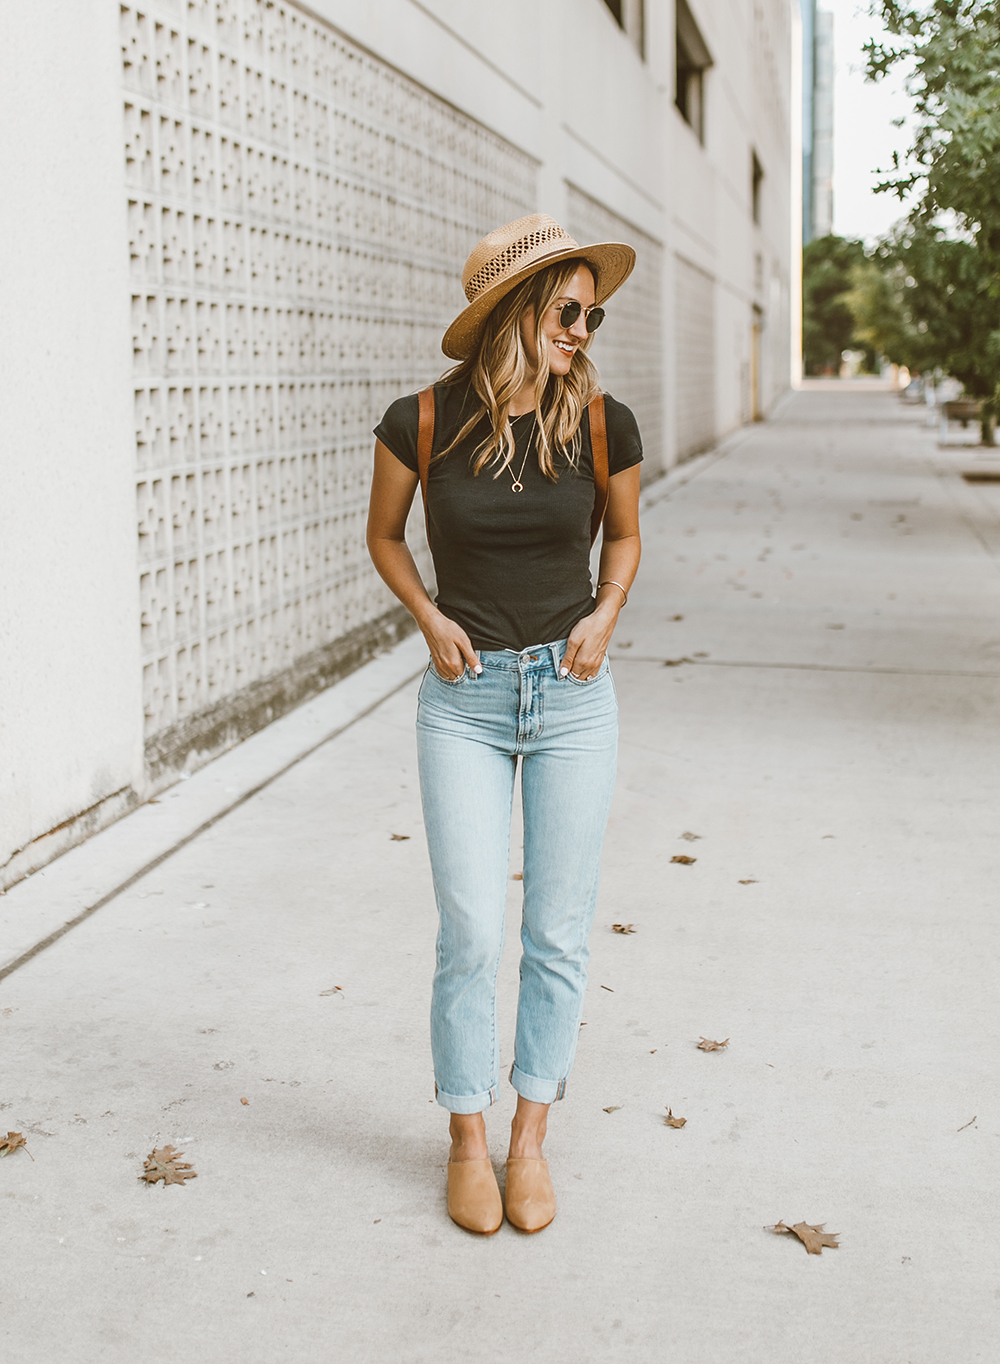 livvyland-blog-olivia-watson-austin-texas-fashion-style-blog-nisolo-tan-suede-mules-mariella-tee-jeans-outfit-4